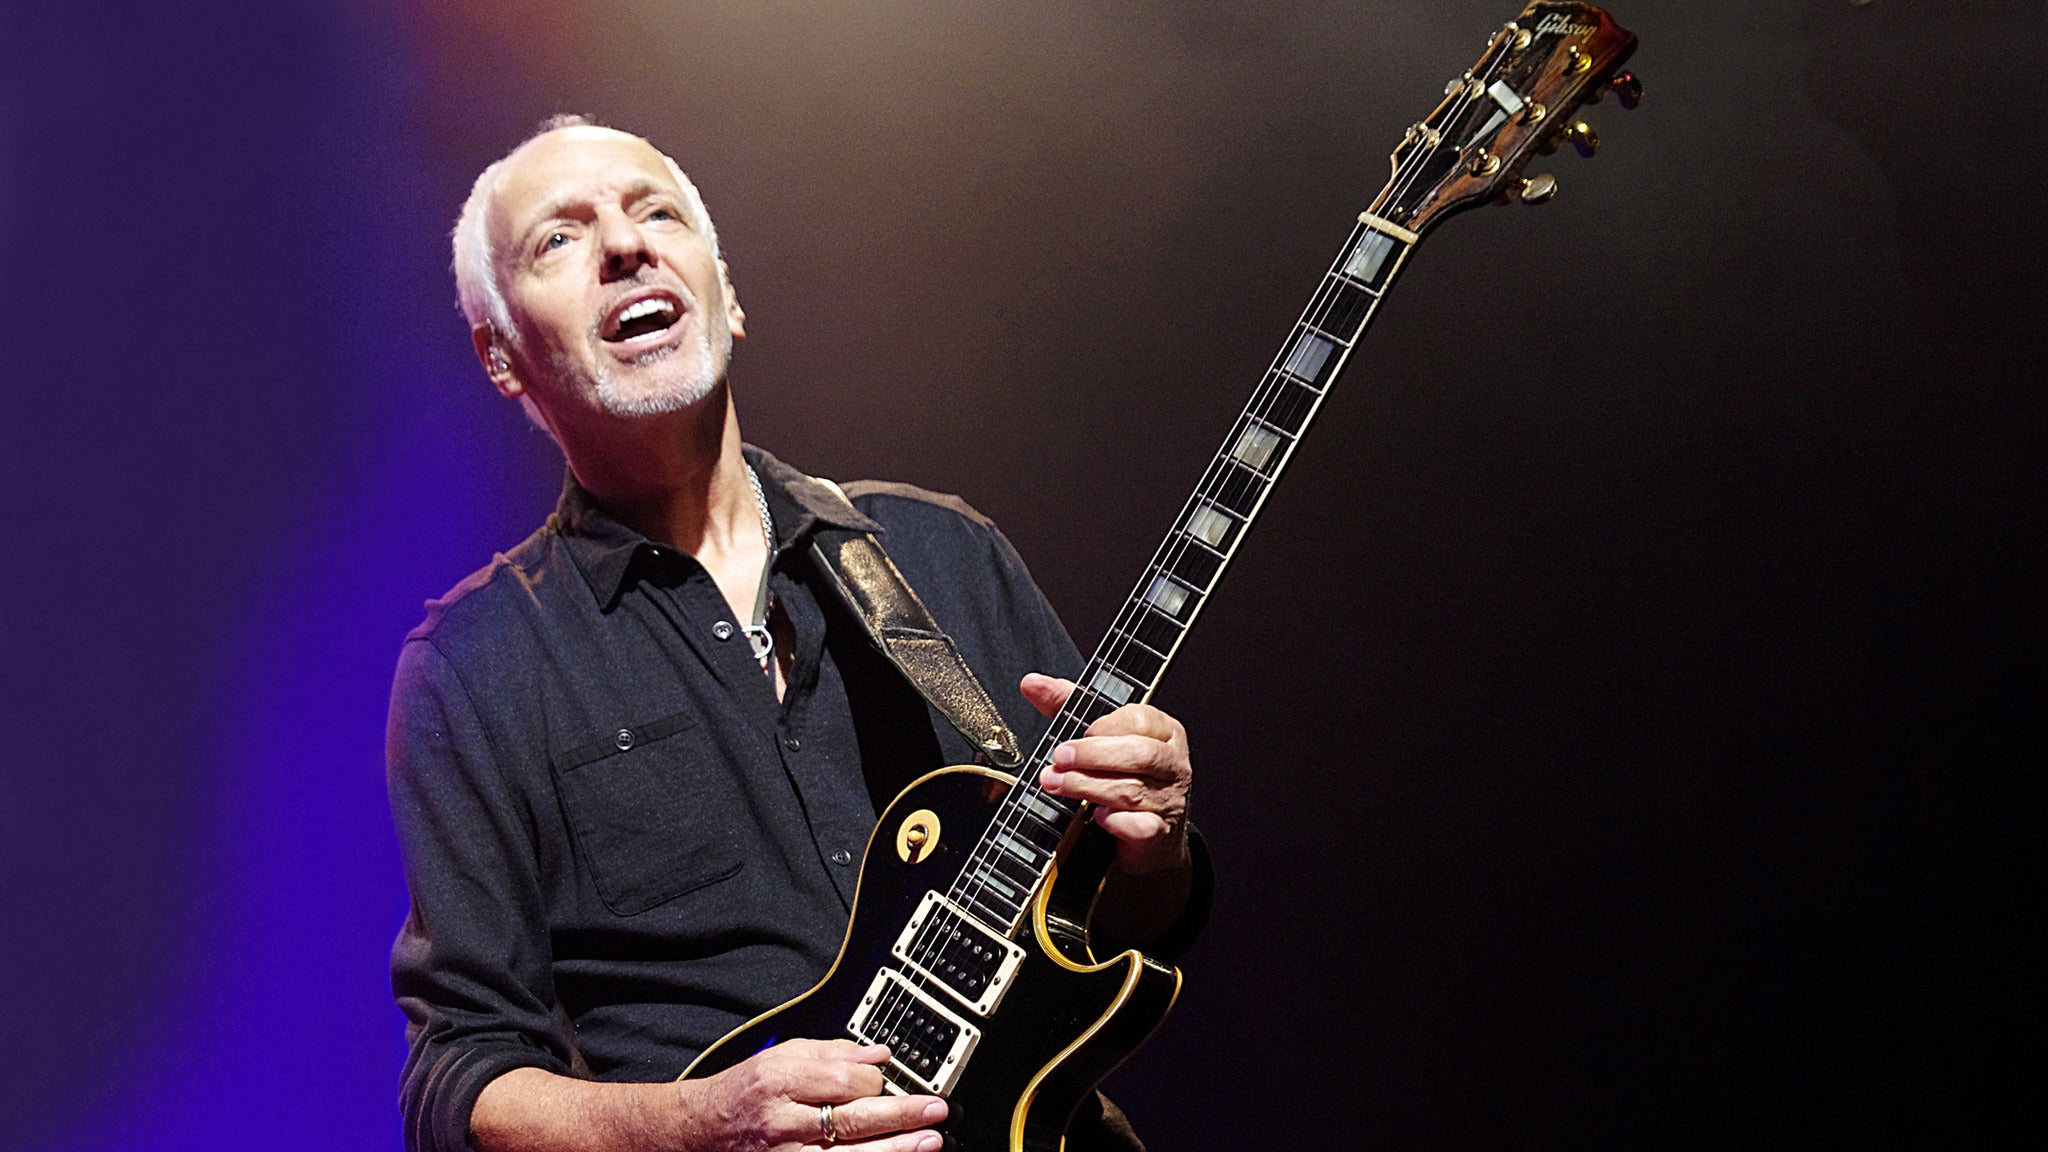 Grammy Award Winner Peter Frampton at Mesa Arts Center